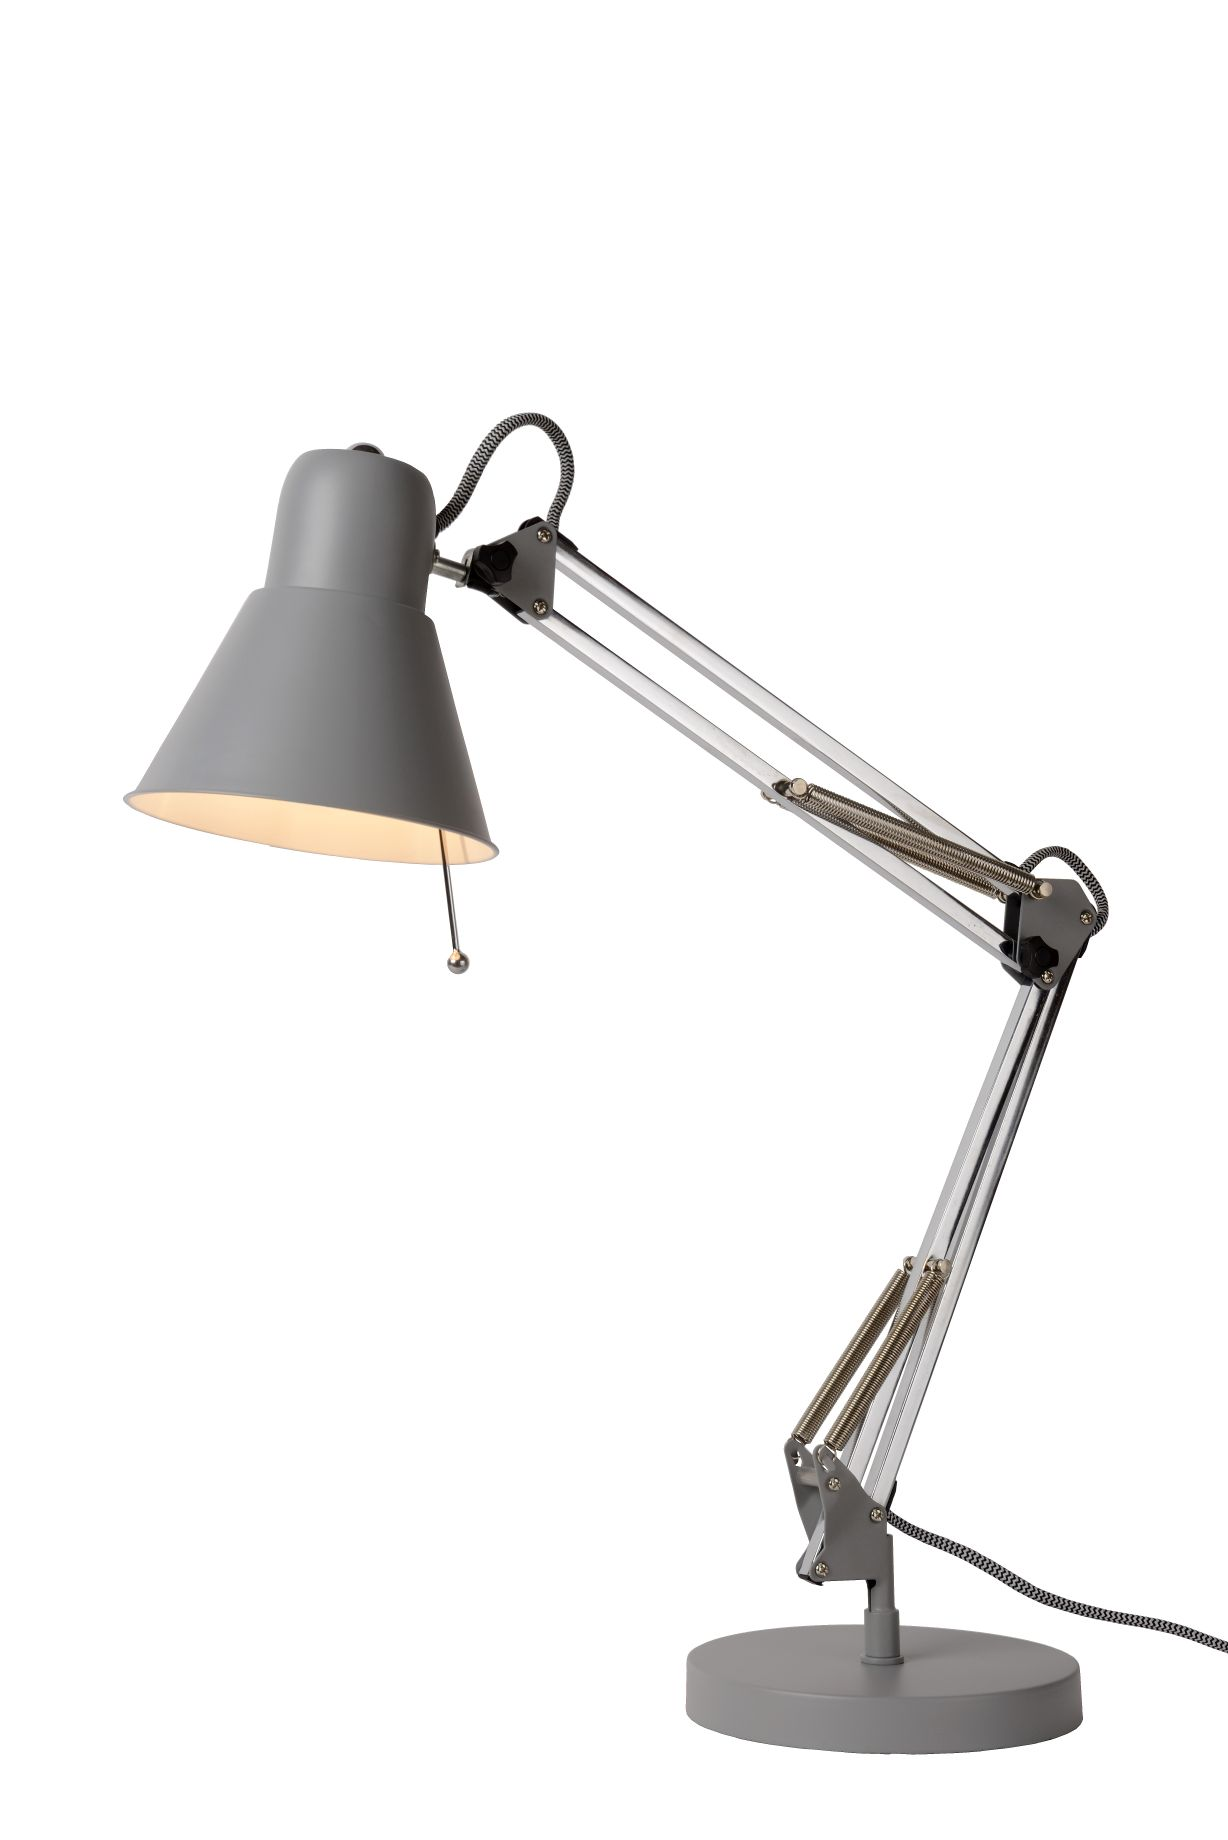 TERRA Desk lamp E27 L55 W18 H60cm Grey